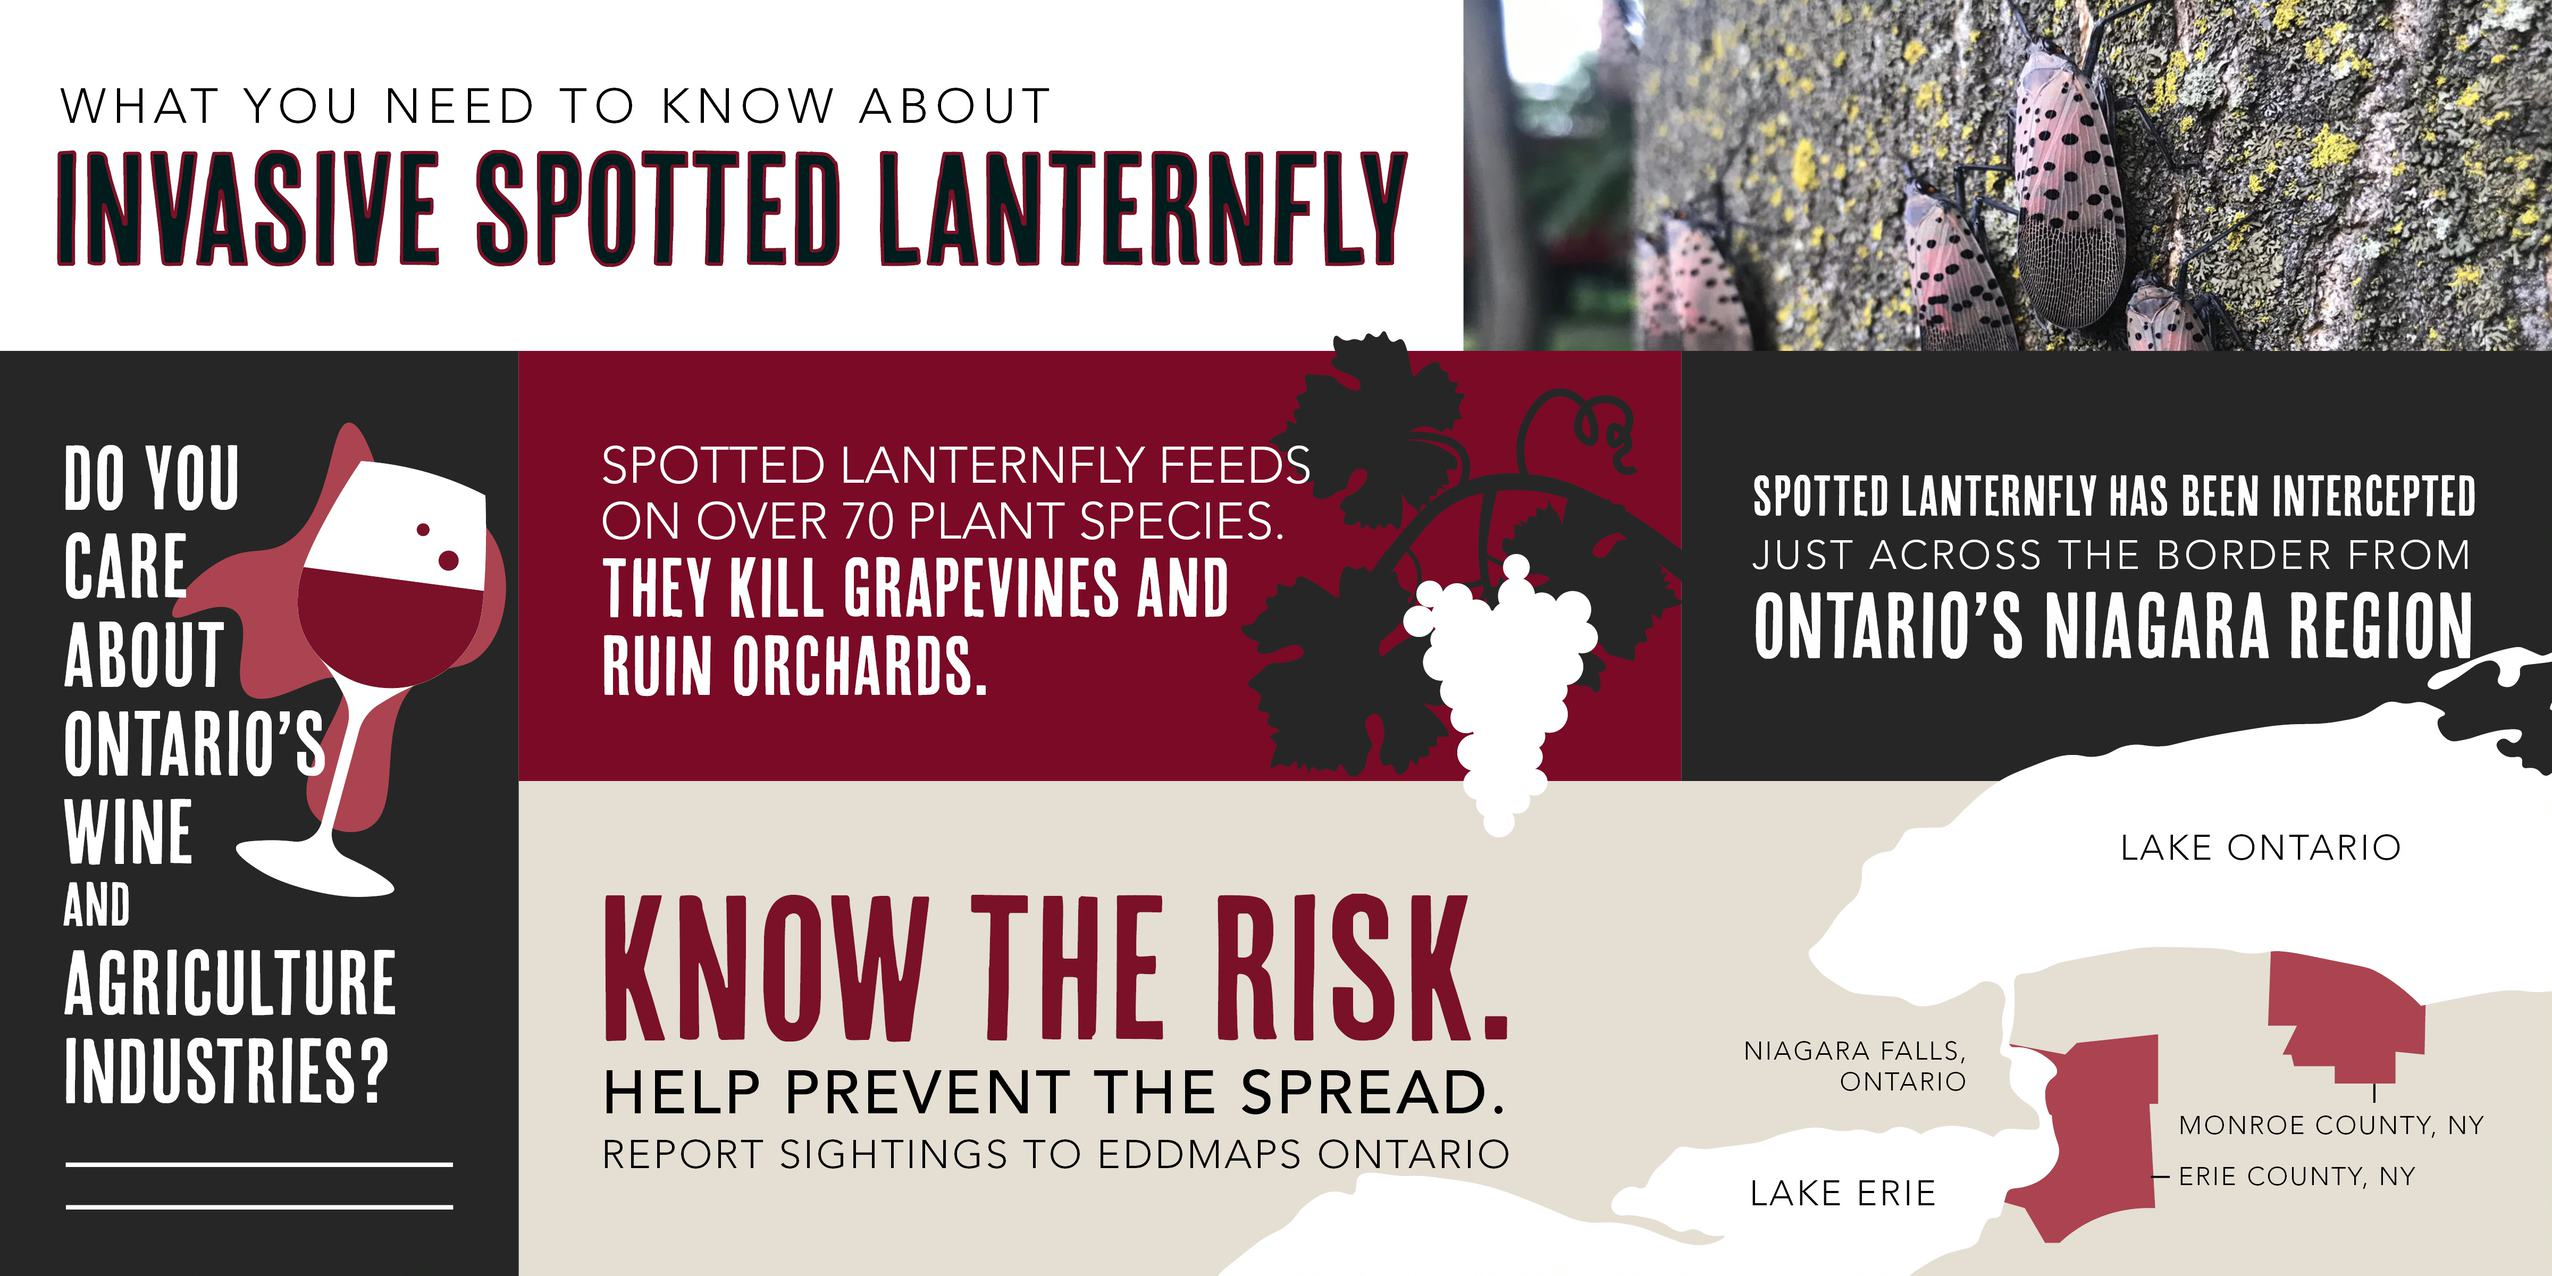 a brochure outlining the risks posed by the spotted lantern fly